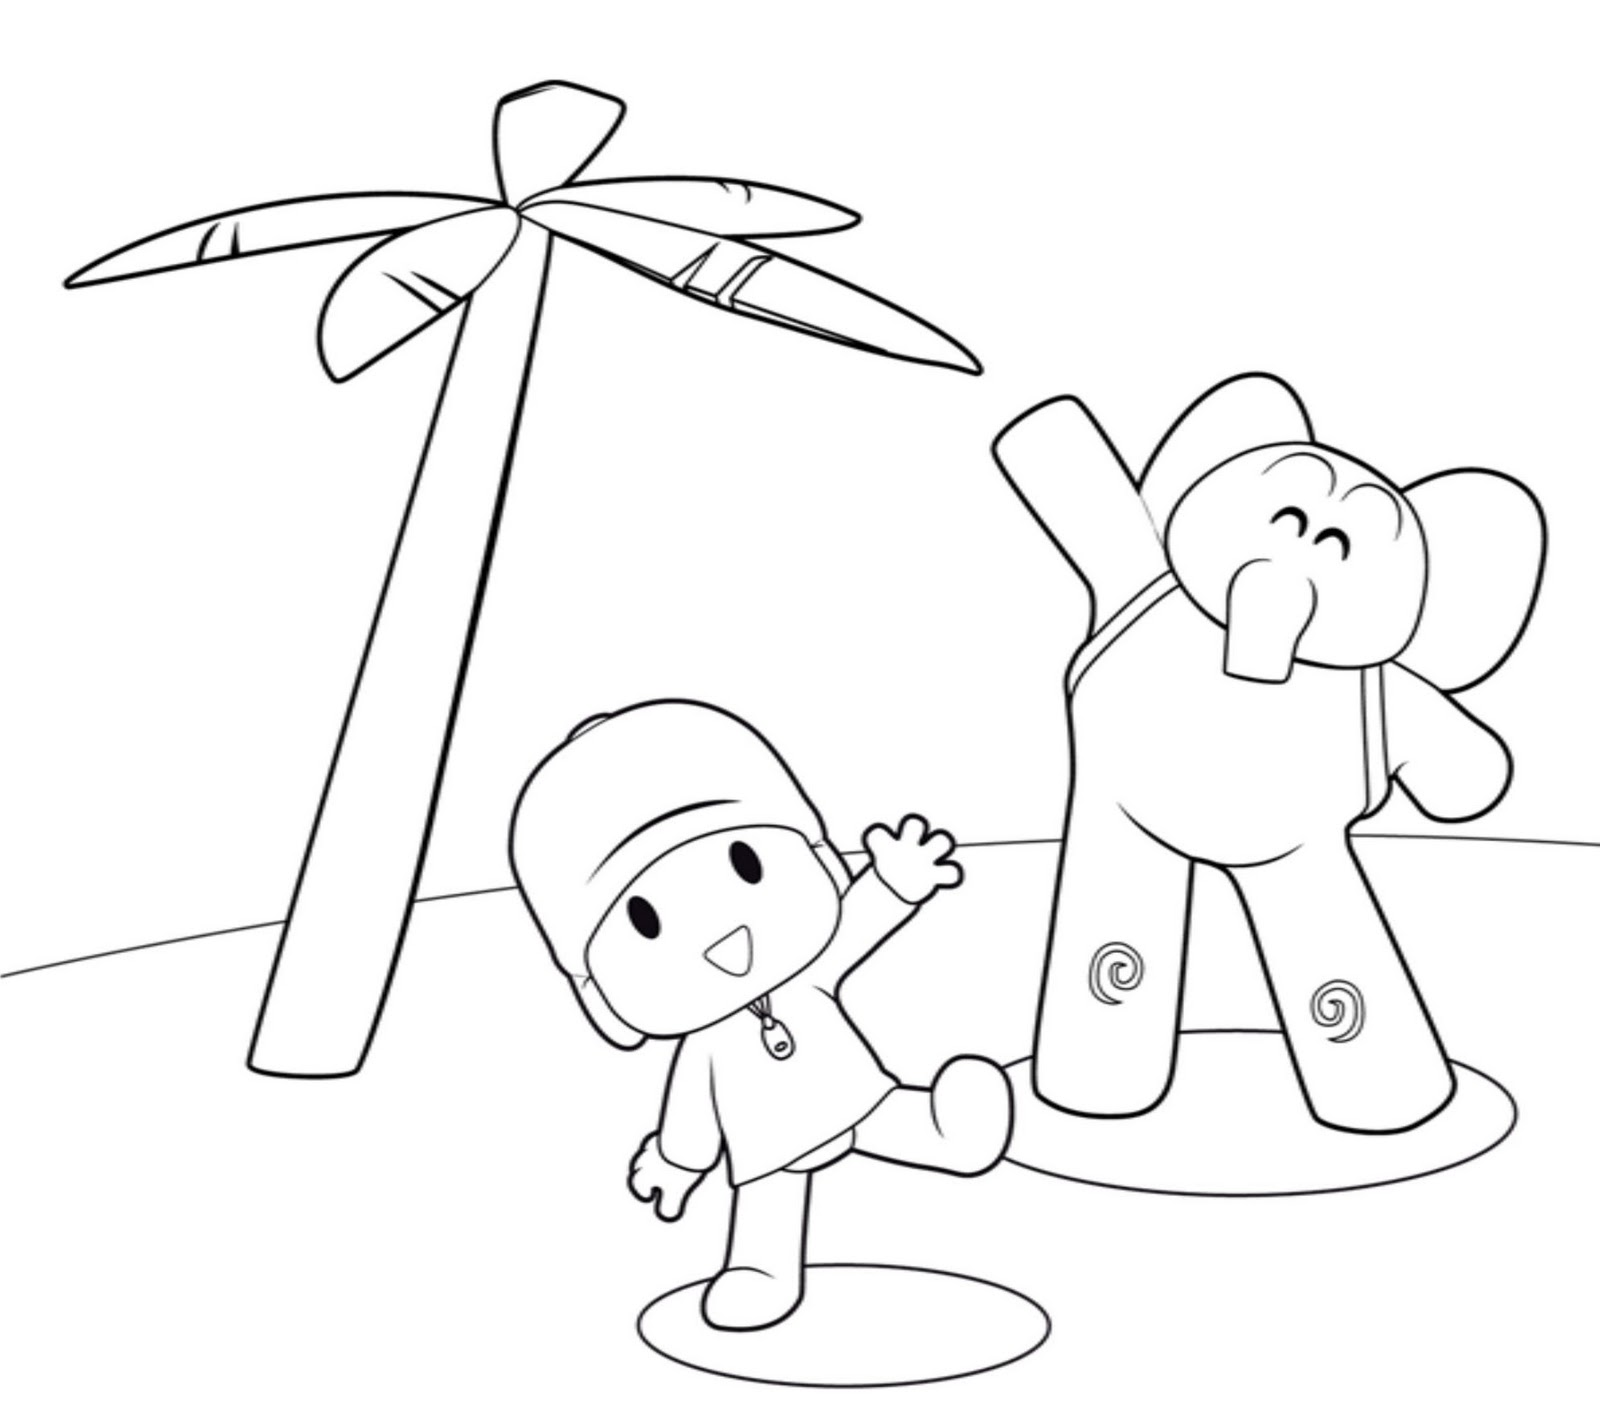 Free Printable Pocoyo Coloring Pages For Kids Printable Color Pages